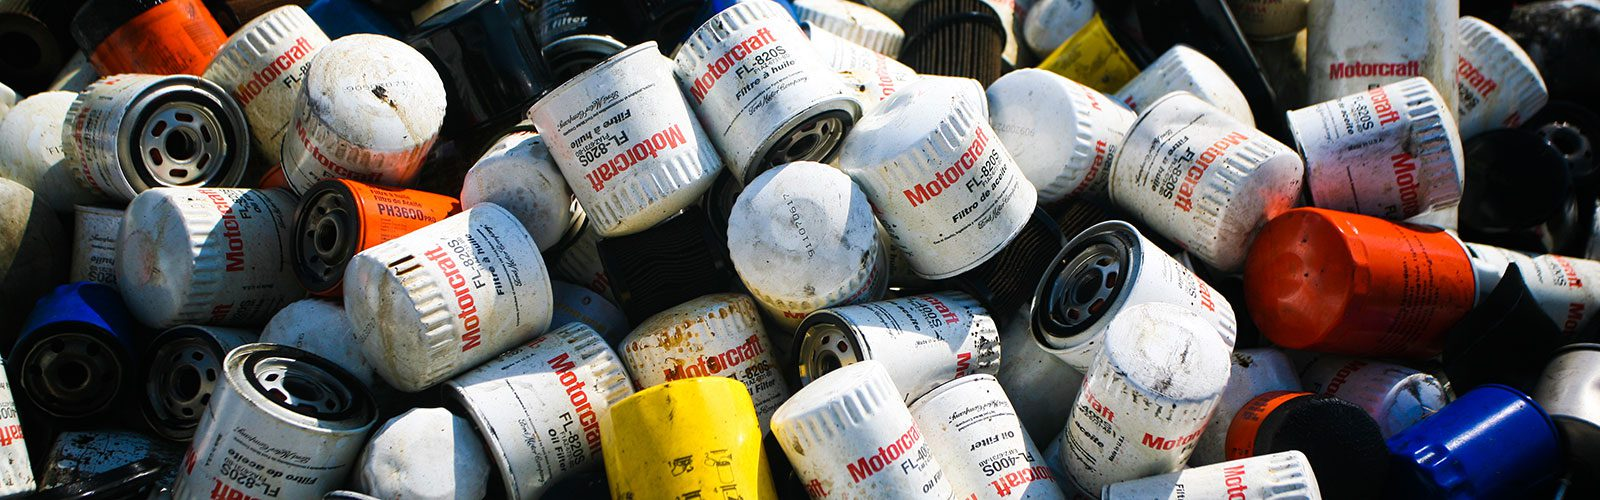 Pile of used oil cans